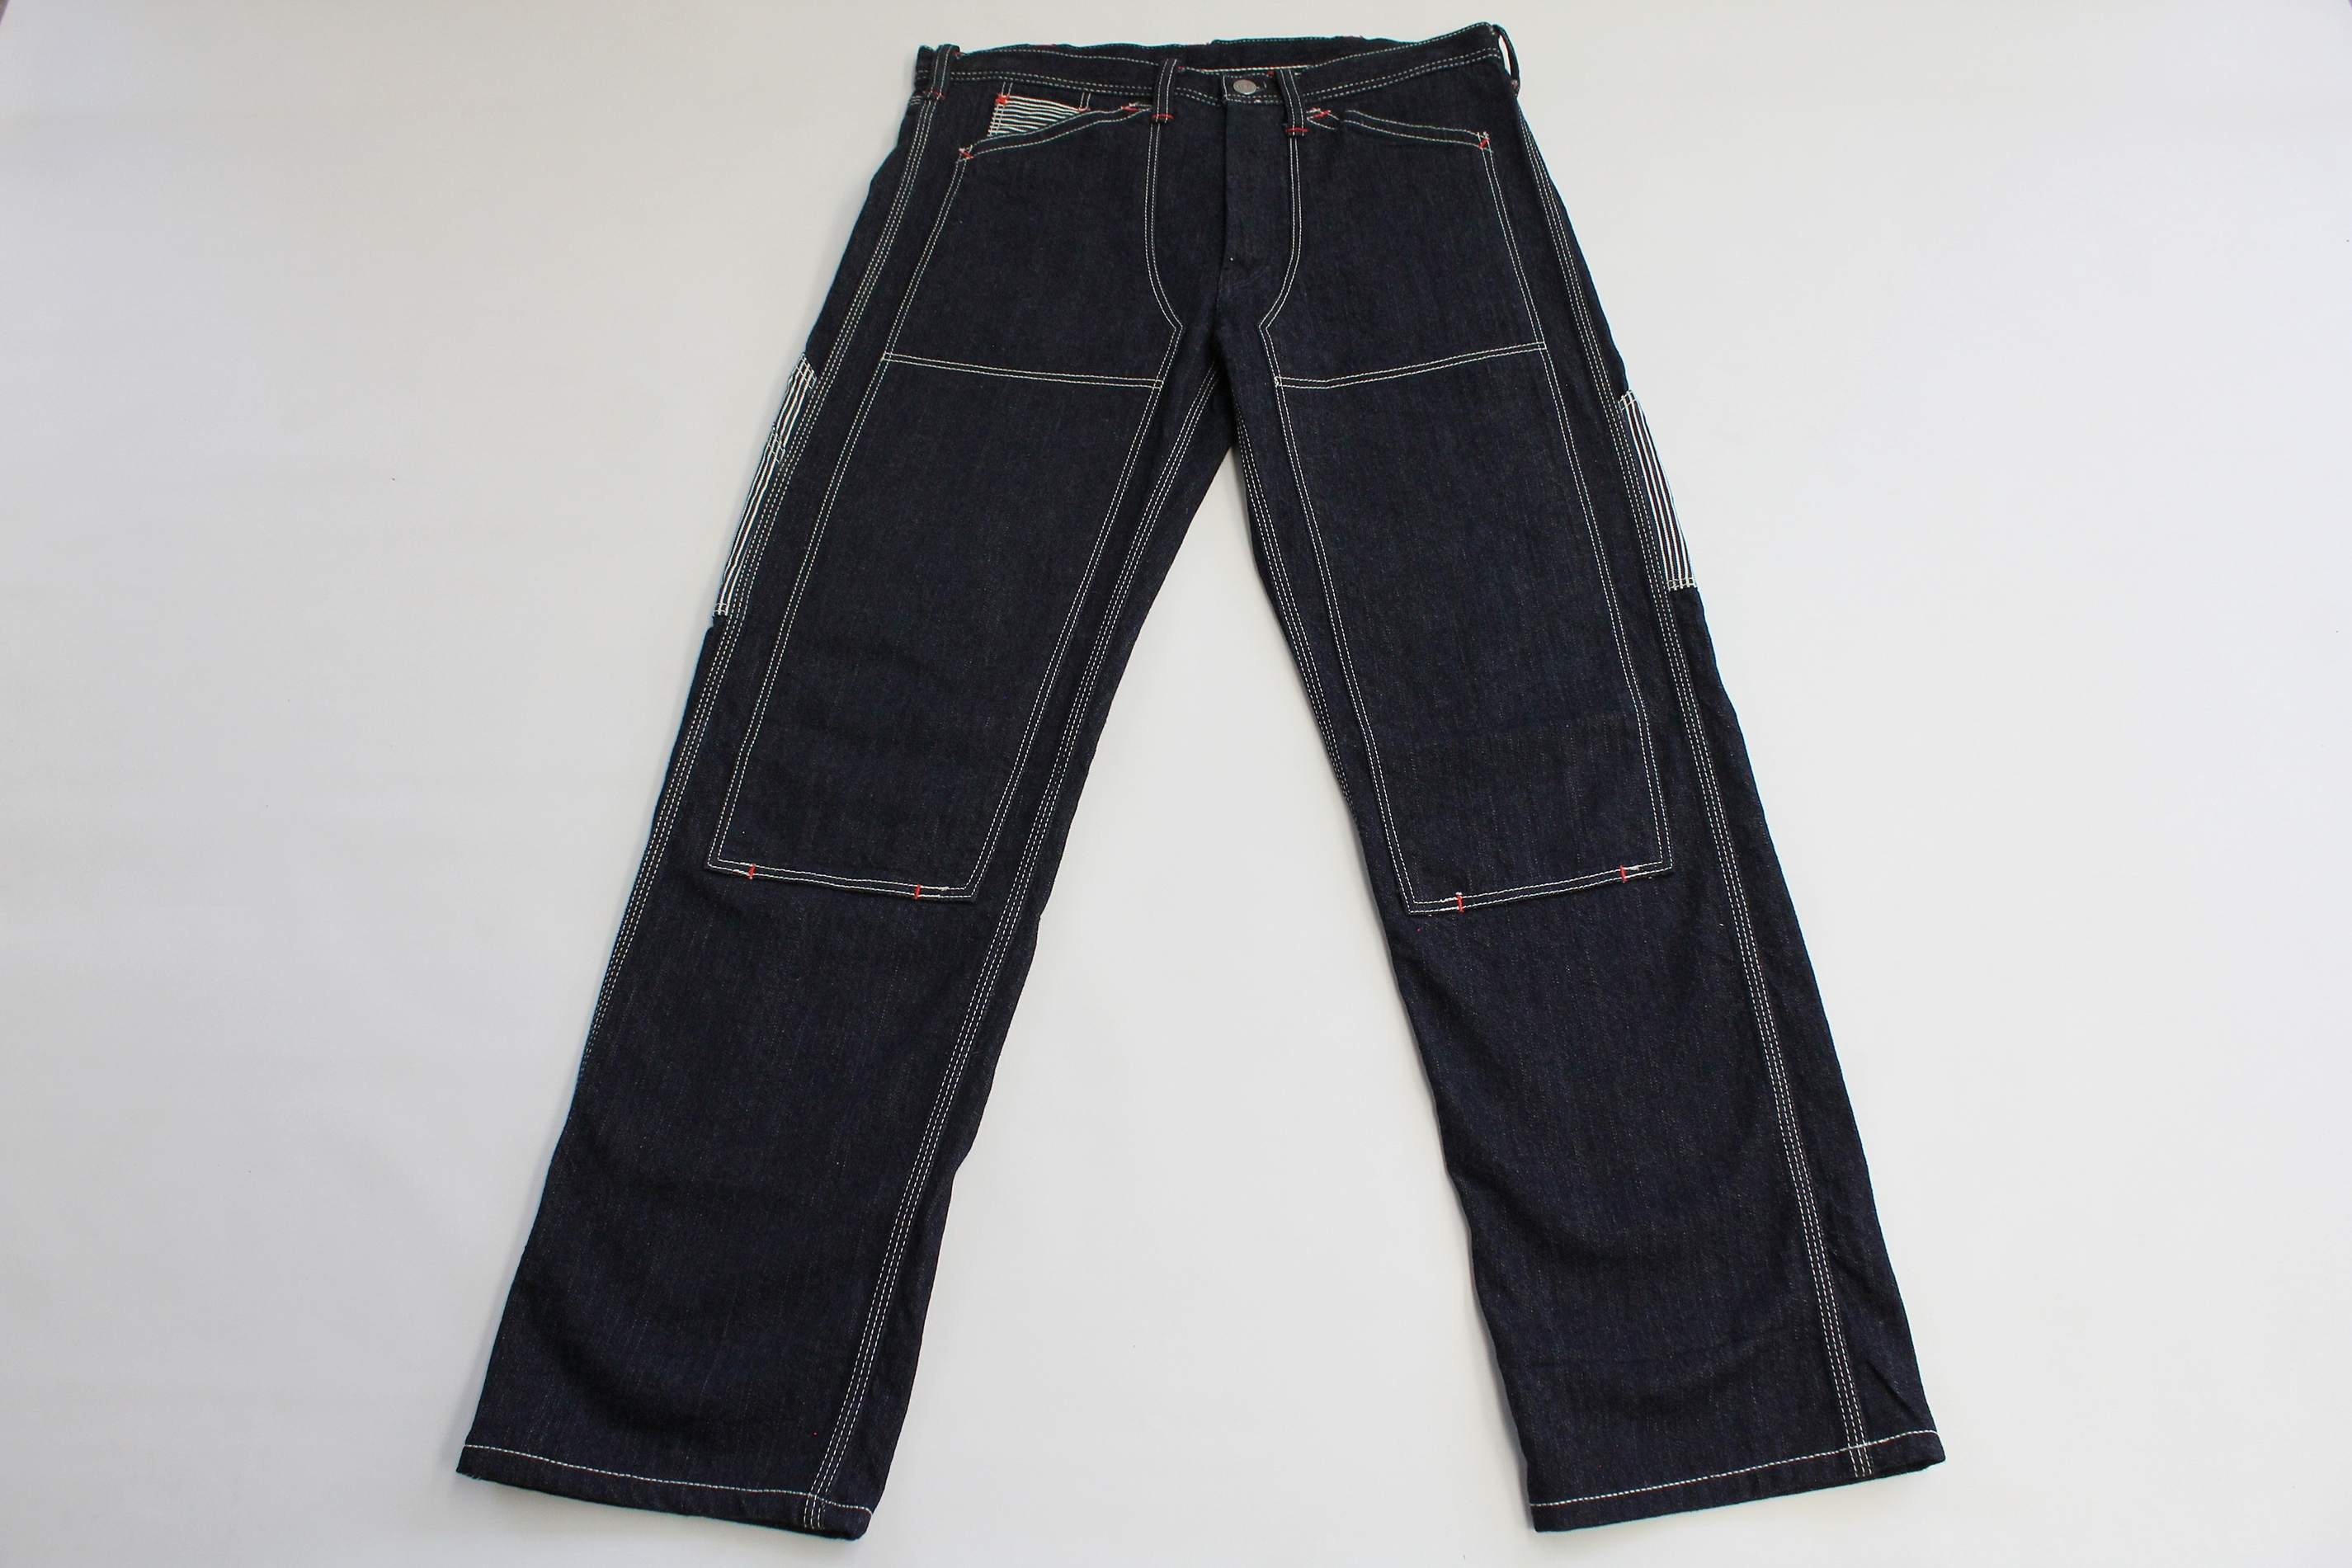 The Flat Head PN-10W Pants